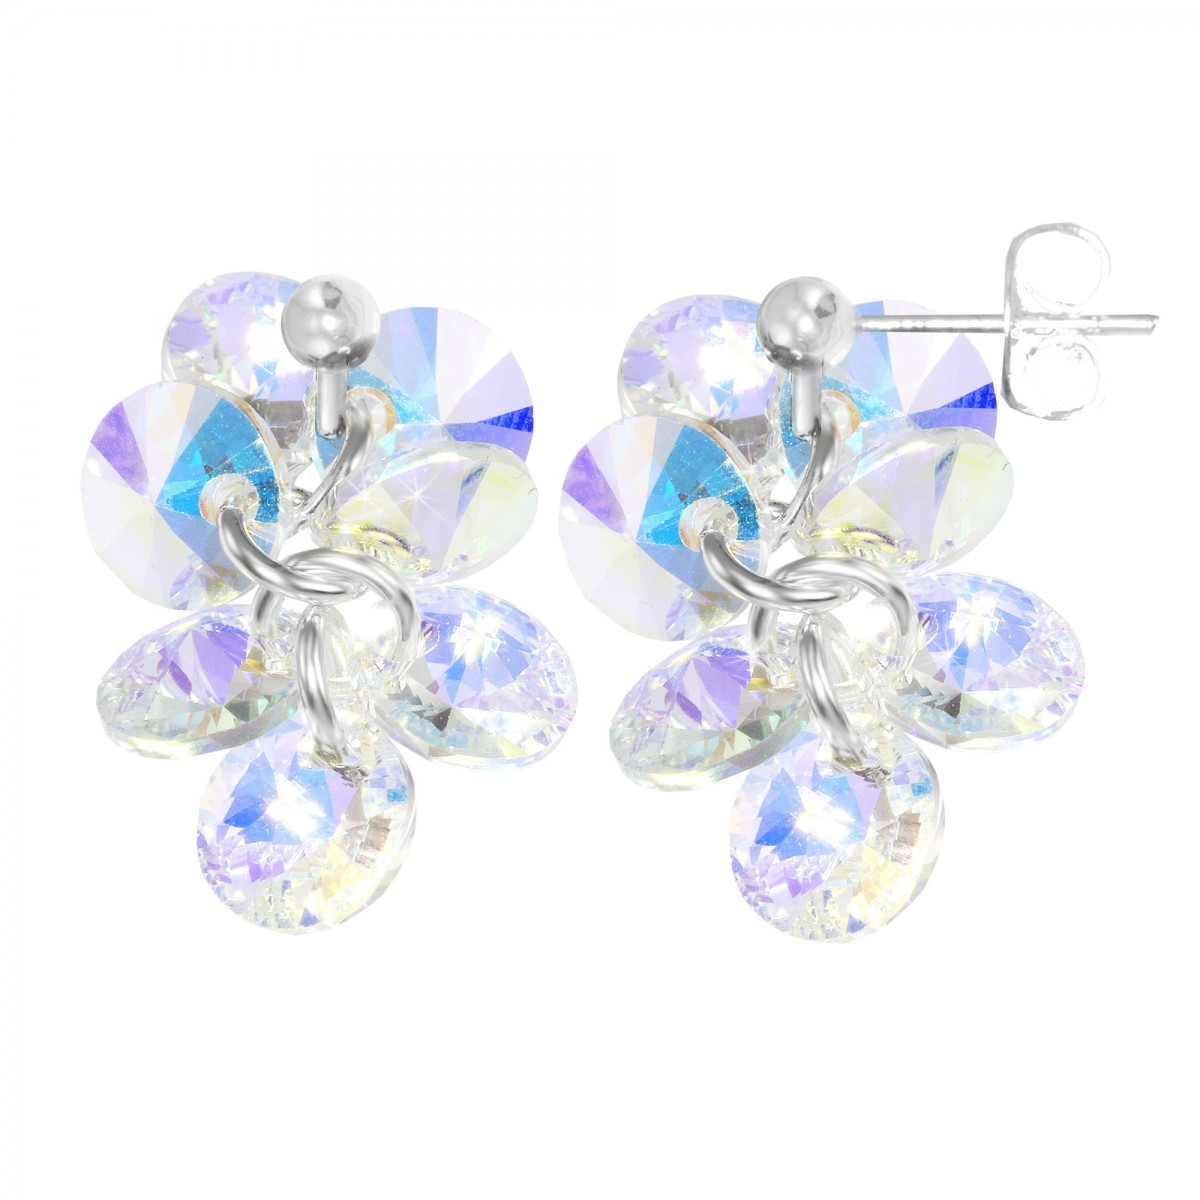 Boucles d'oreilles mode So Charm made with crystal from Swarovski irisé